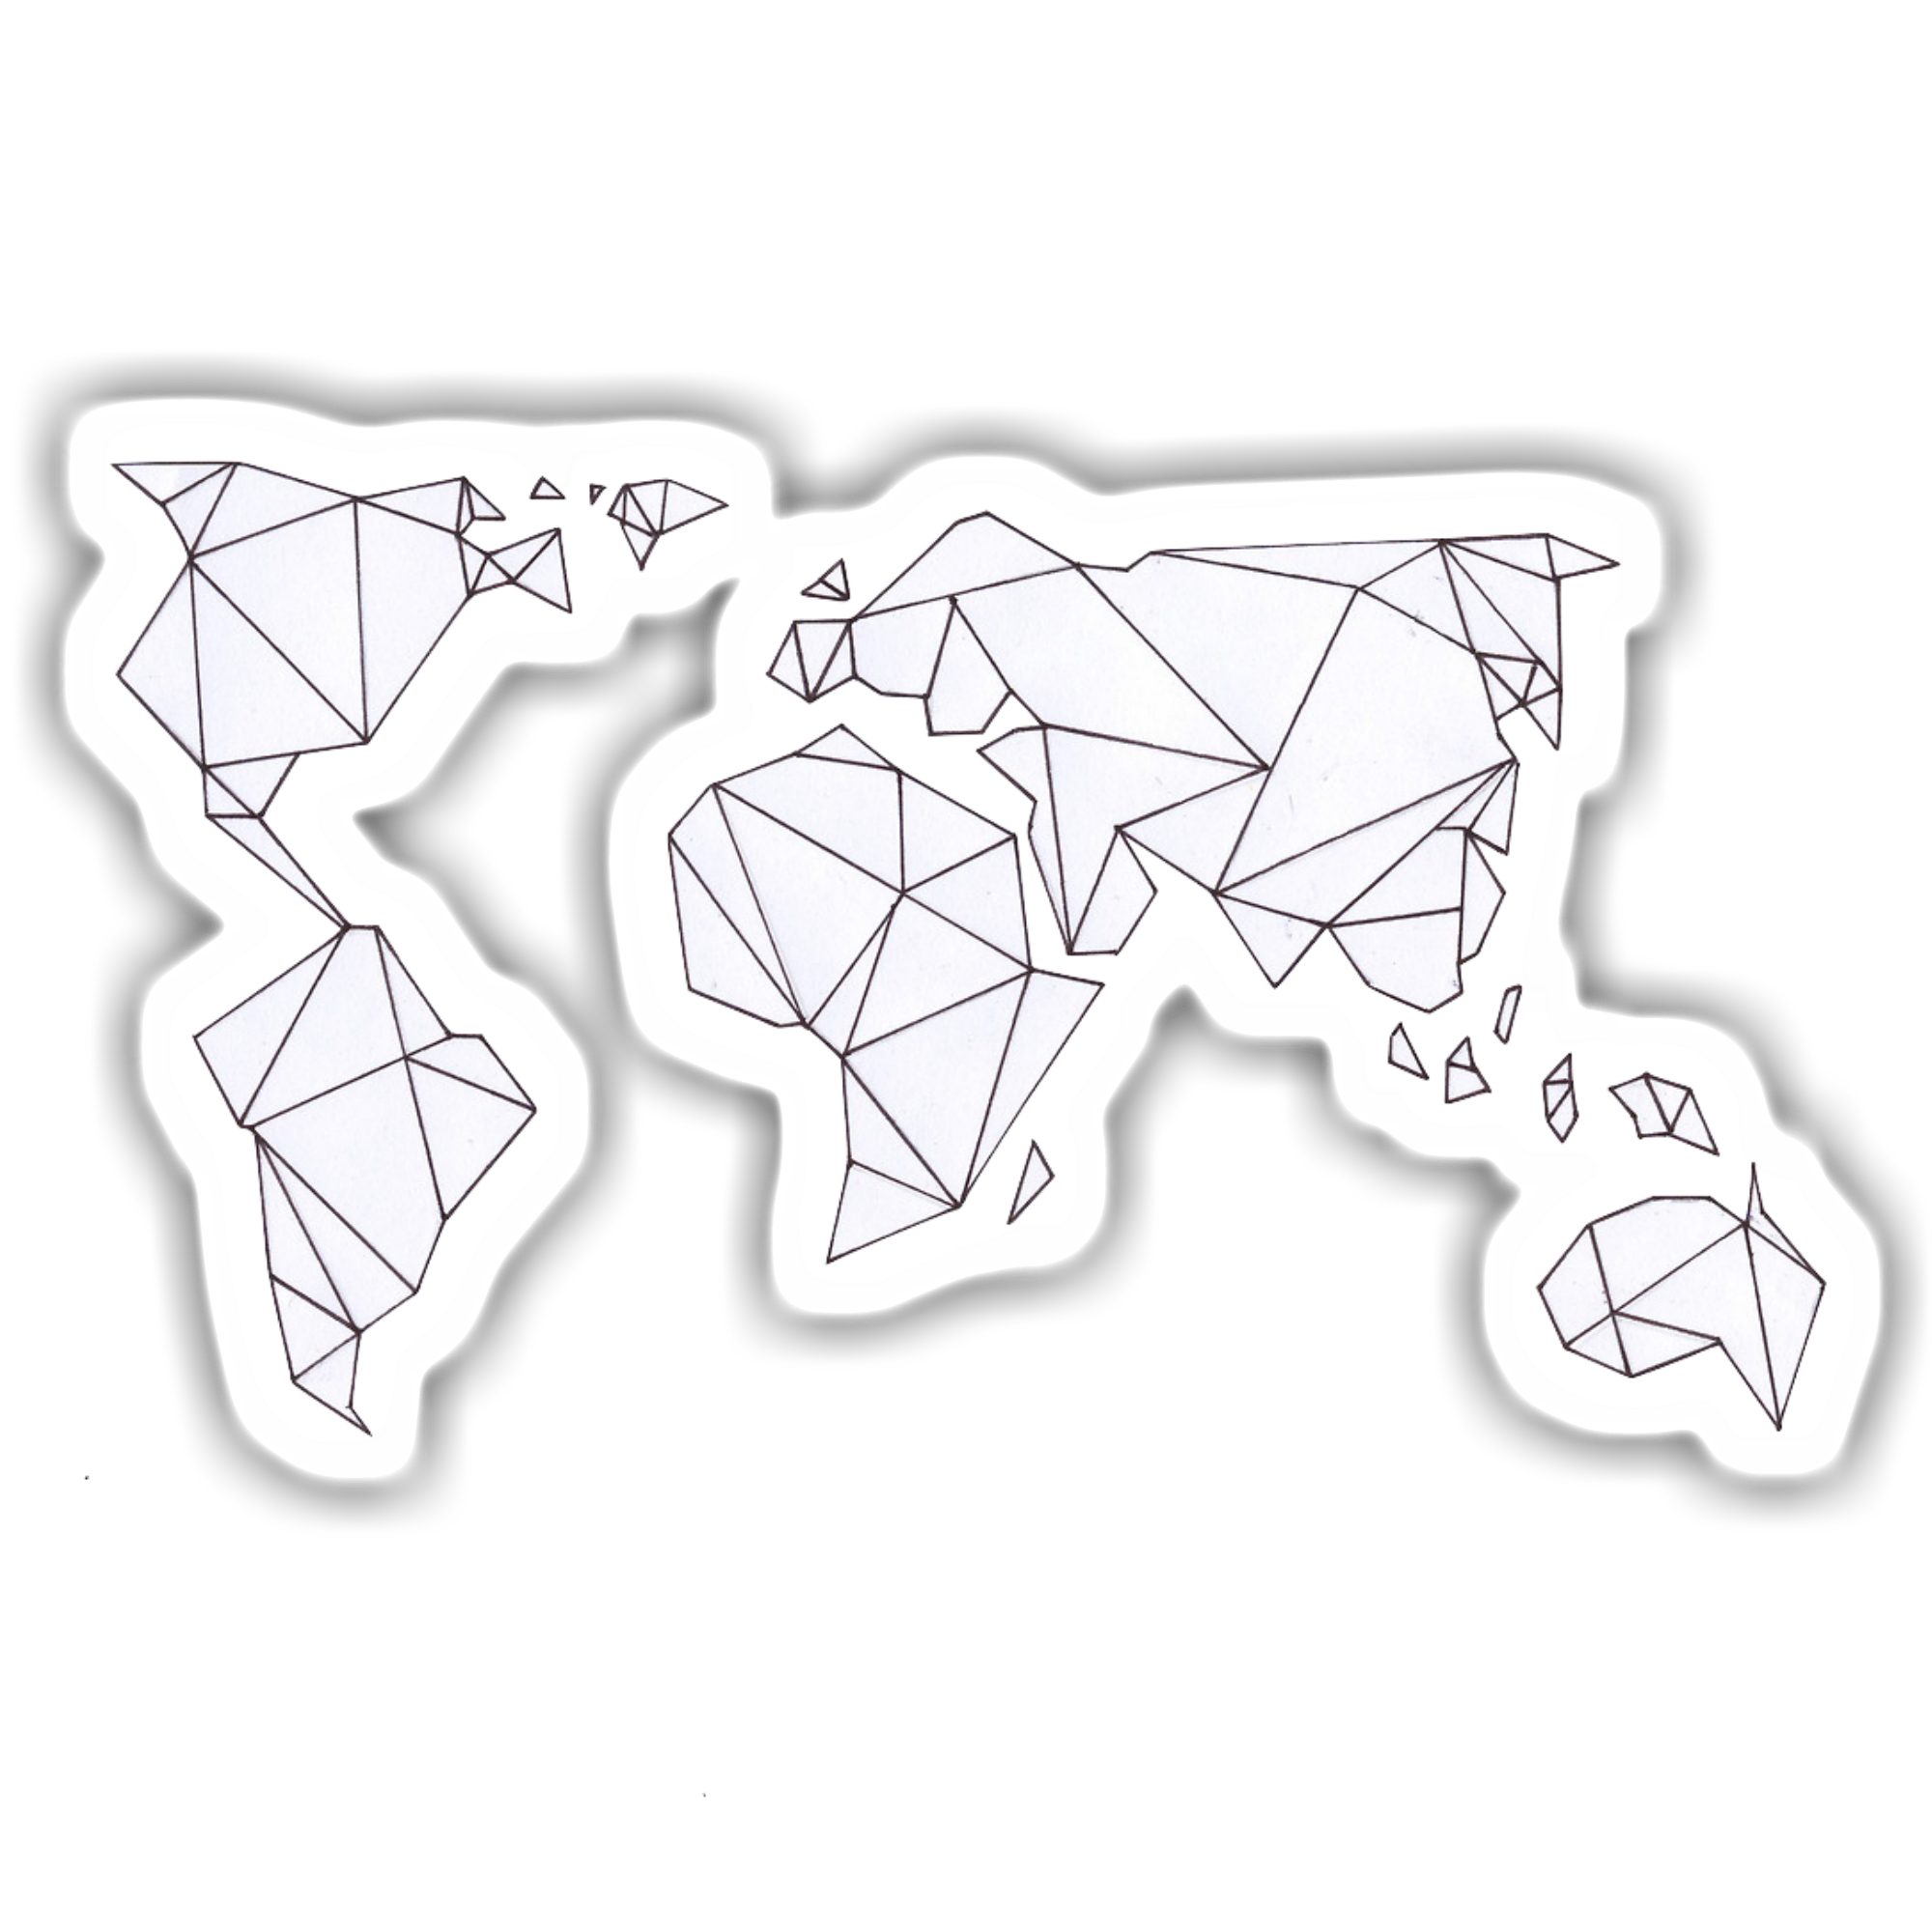 A sticker of a geometric world map. This sticker is